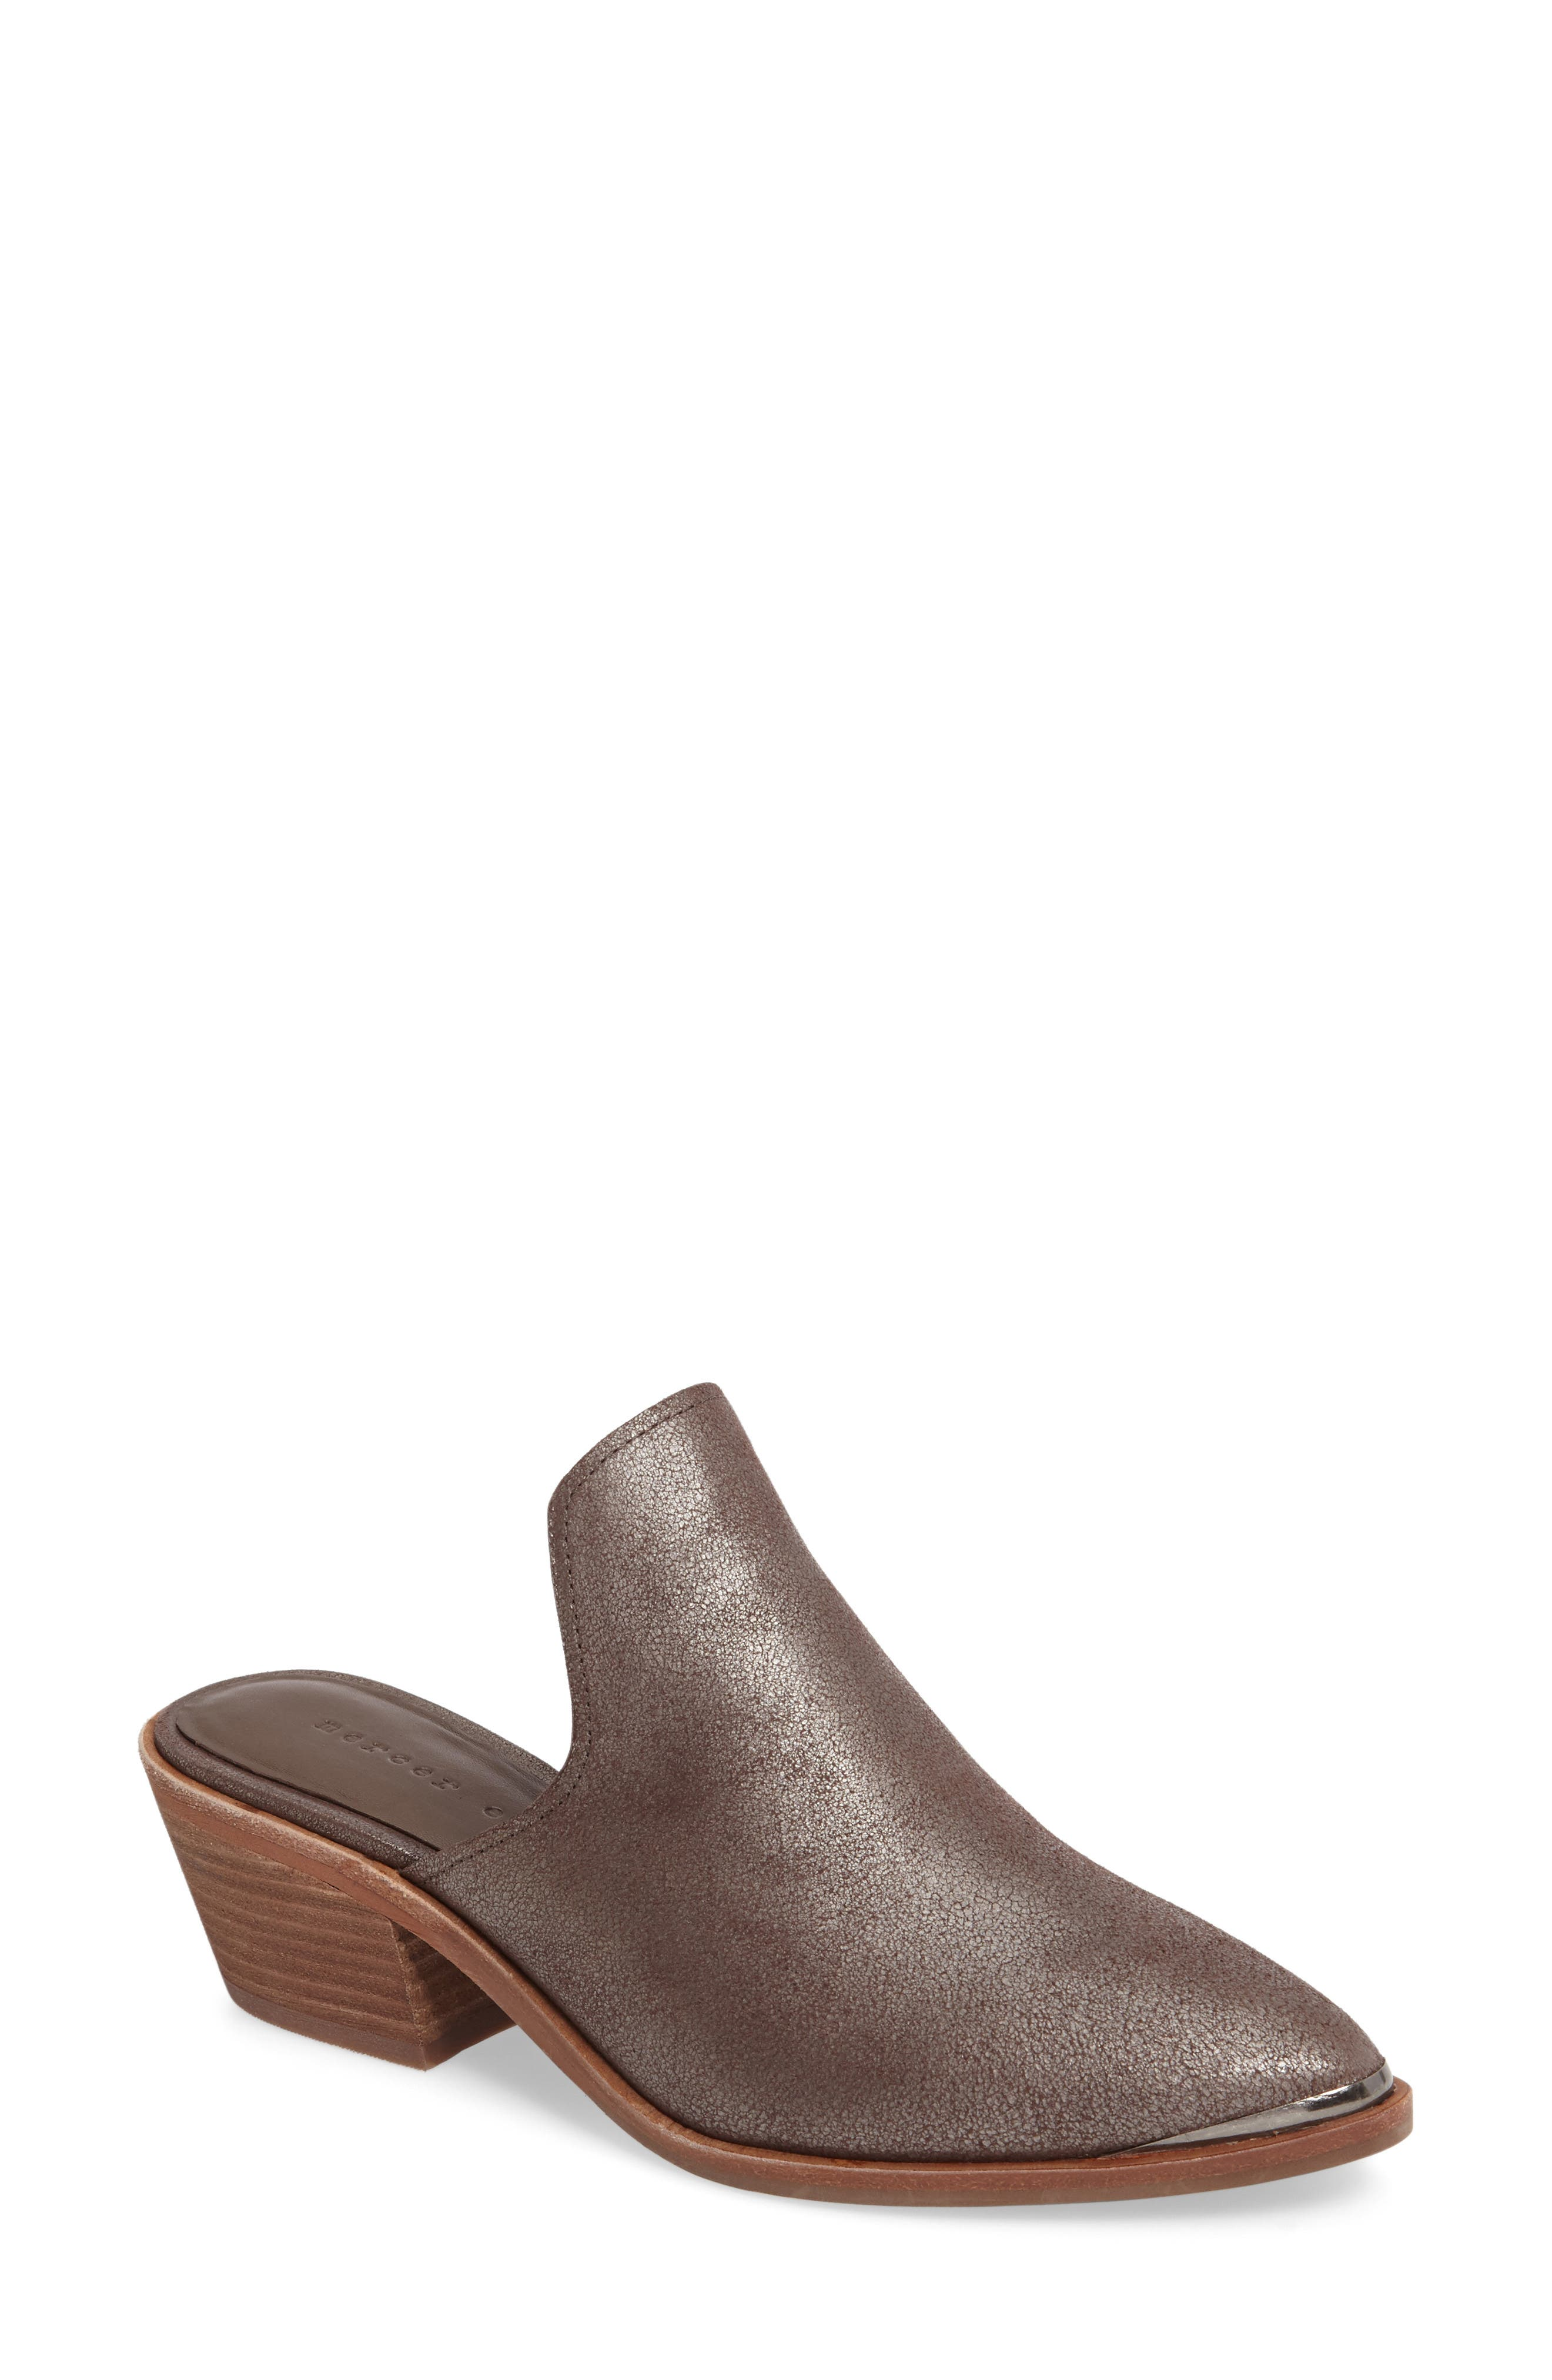 Mercer Edit Layitonme Mule (Women)